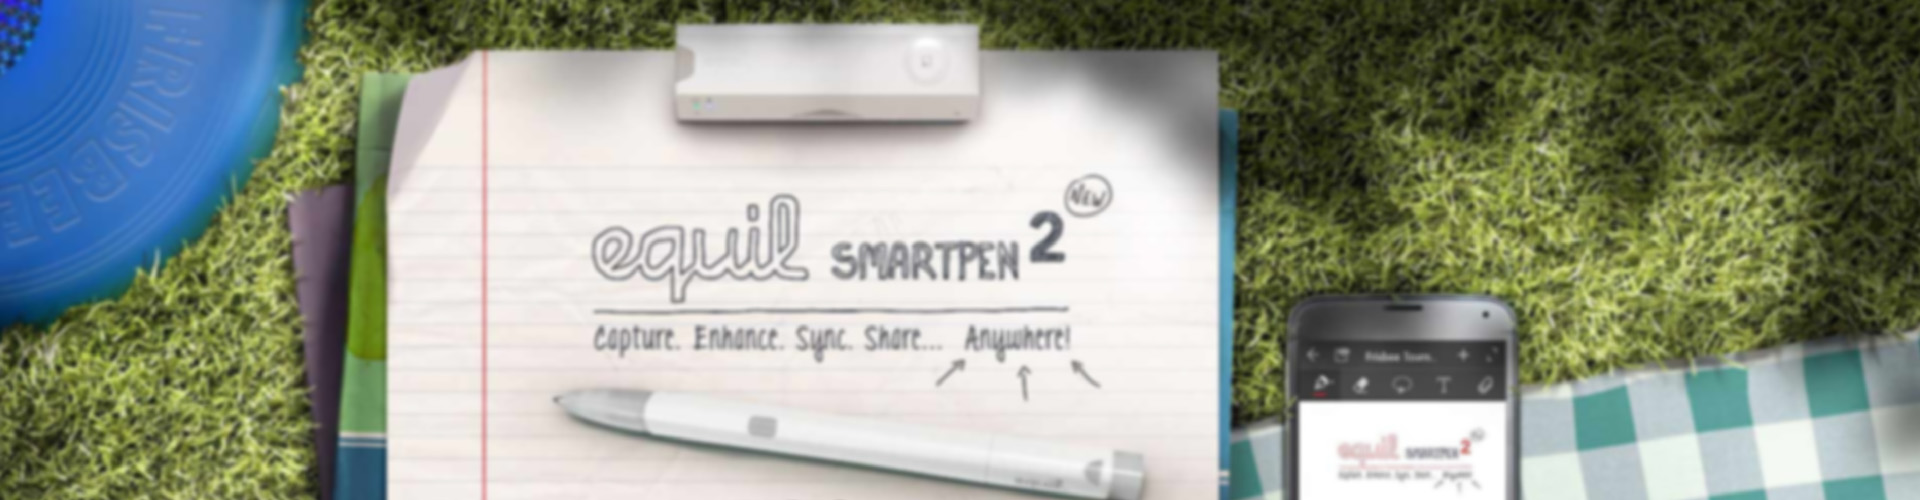 Equil Smartpen 2 Digitizes the Real Ink Pen For Saving Your Handwritten Notes in the Cloud